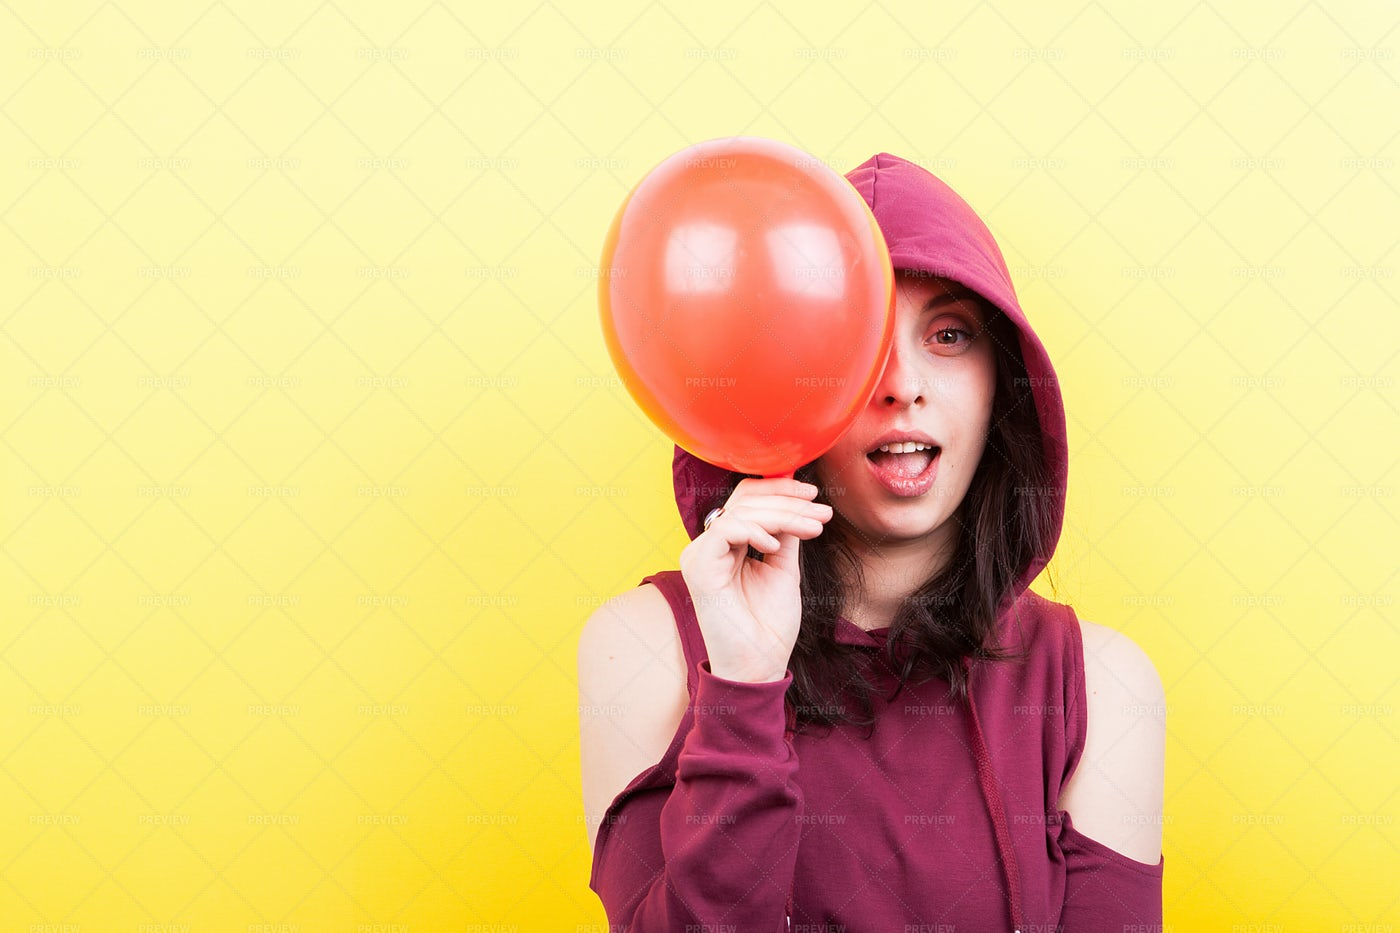 Playful And Making Faces: Stock Photos